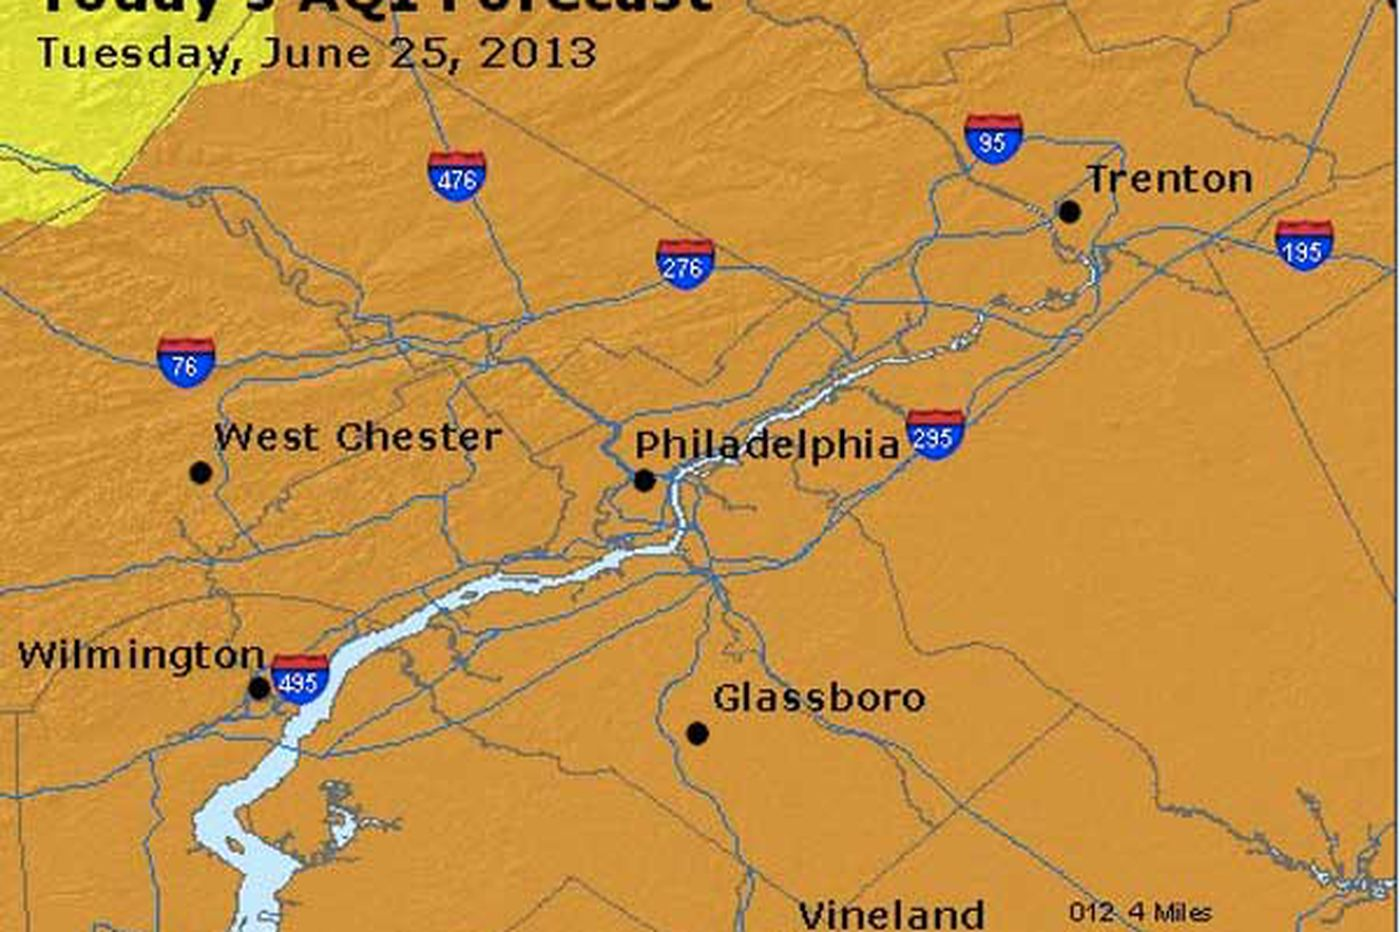 Air quality alert issued for Philly area; more heat, humidity on the way